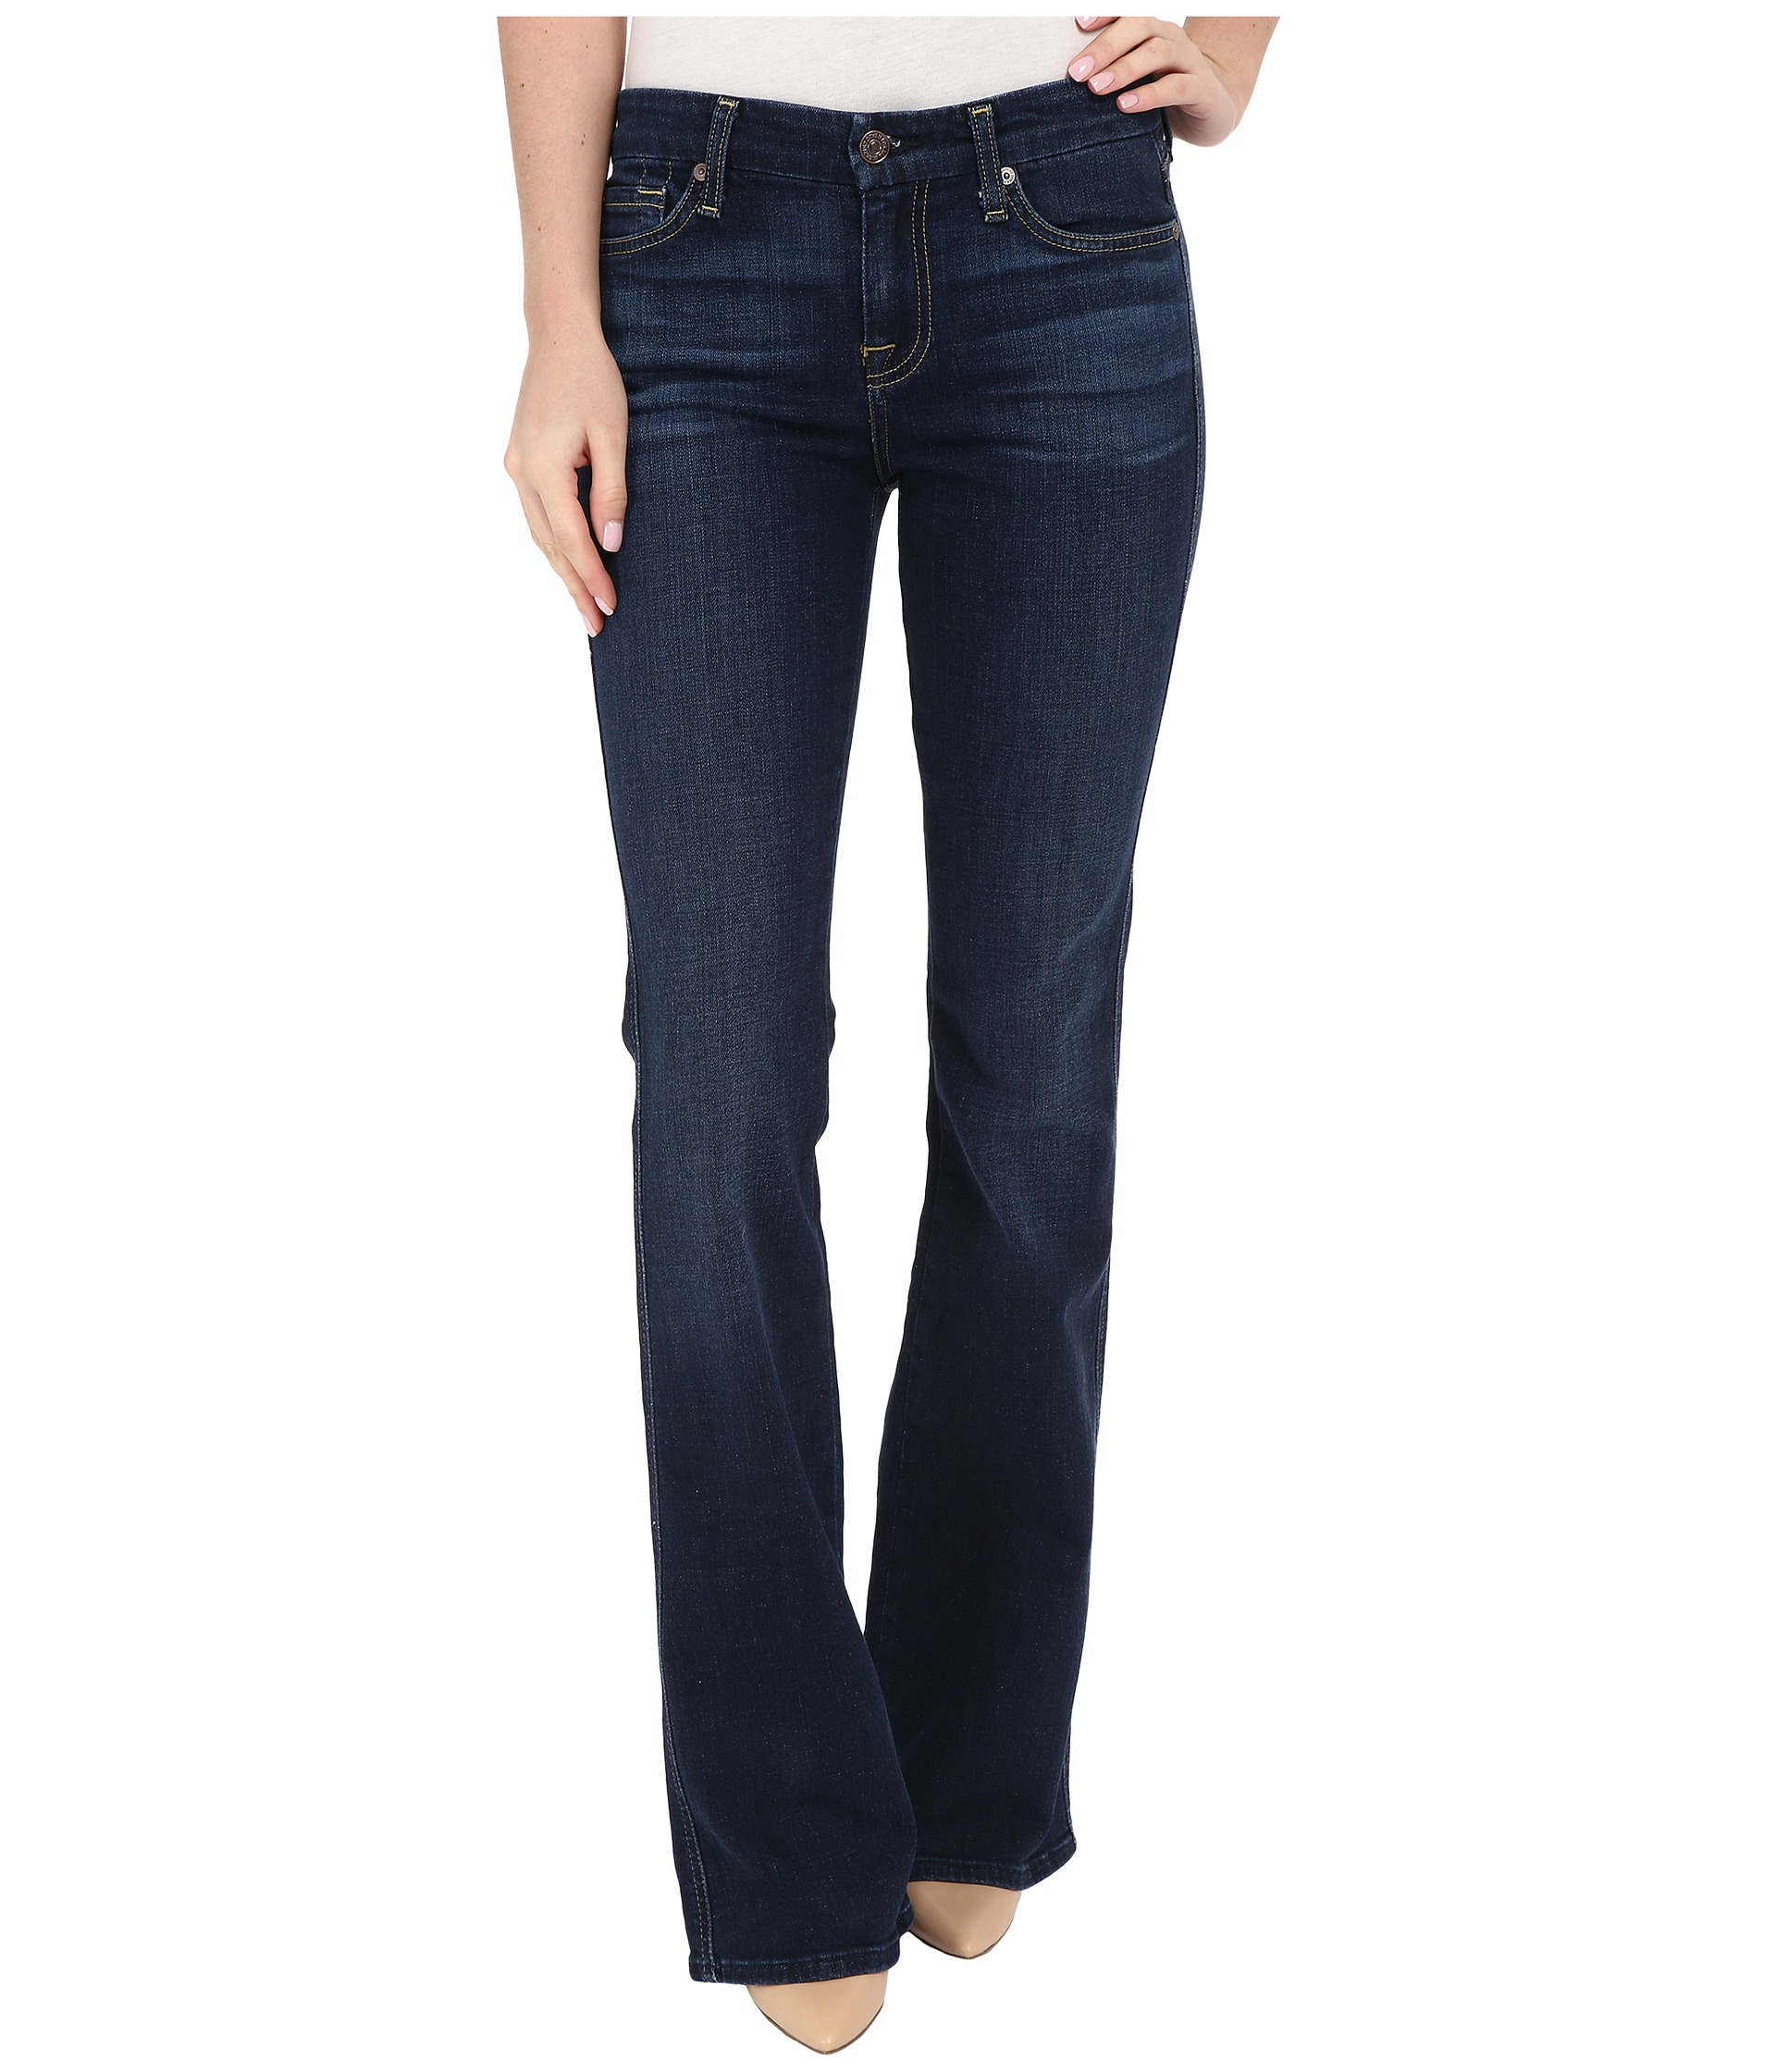 7 For All Mankind A Pocket in Nouveau New York Dark at Zappos.com